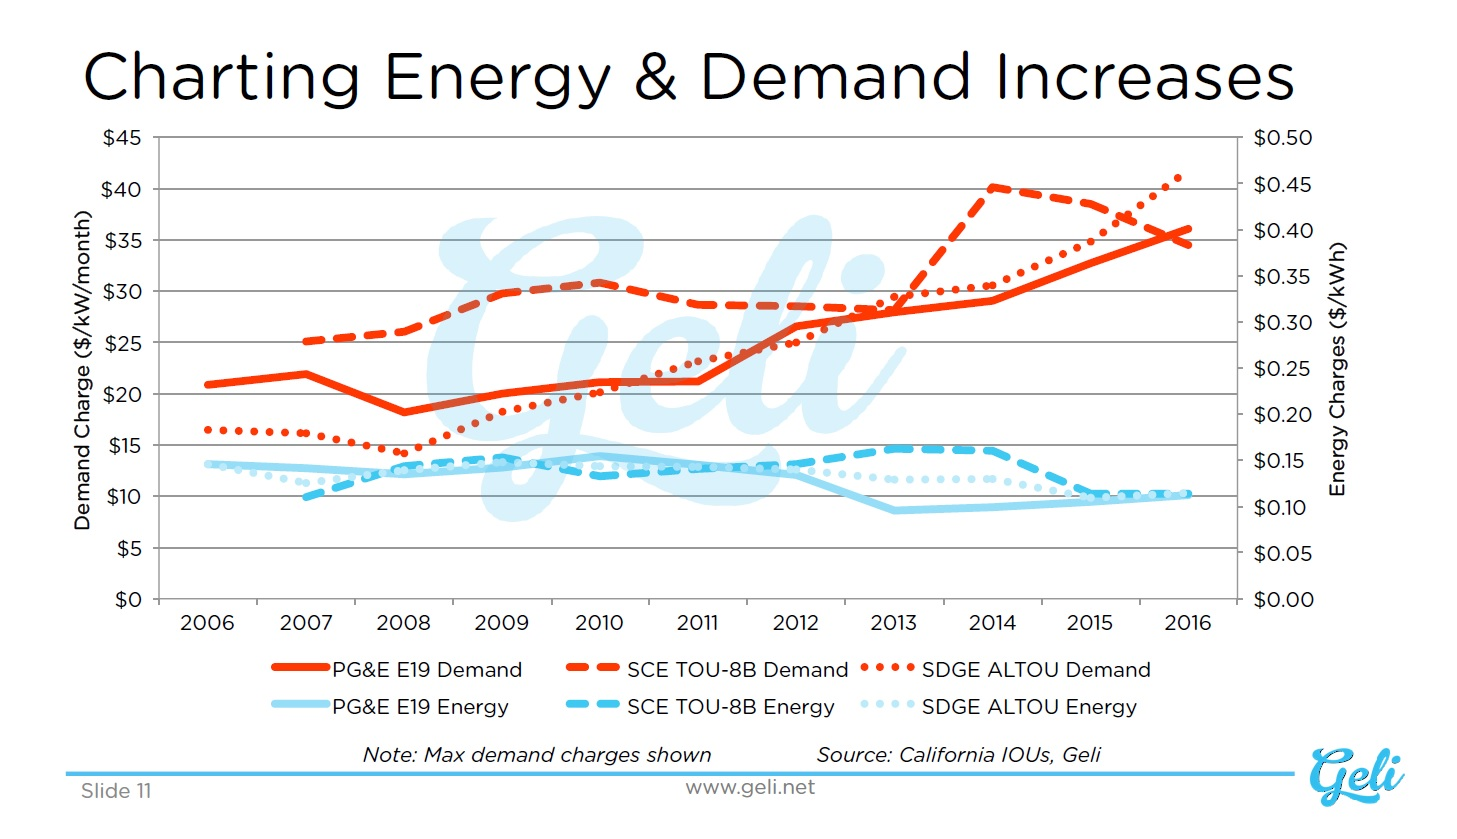 Charting Energy and Demand